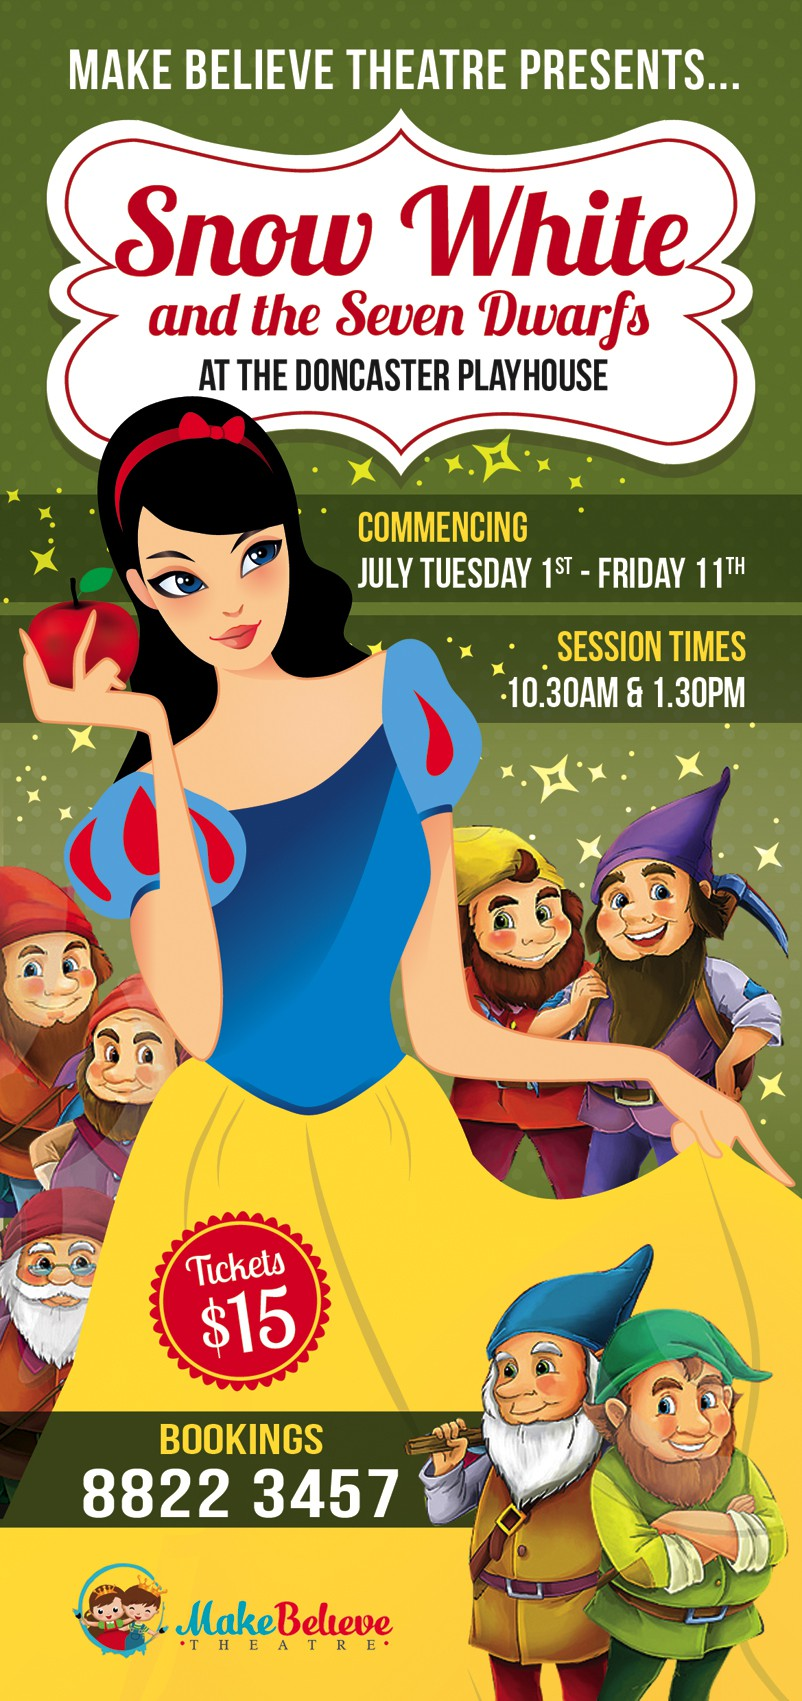 create a flyer advertising 'Snow White and the Seven Dwarfs'